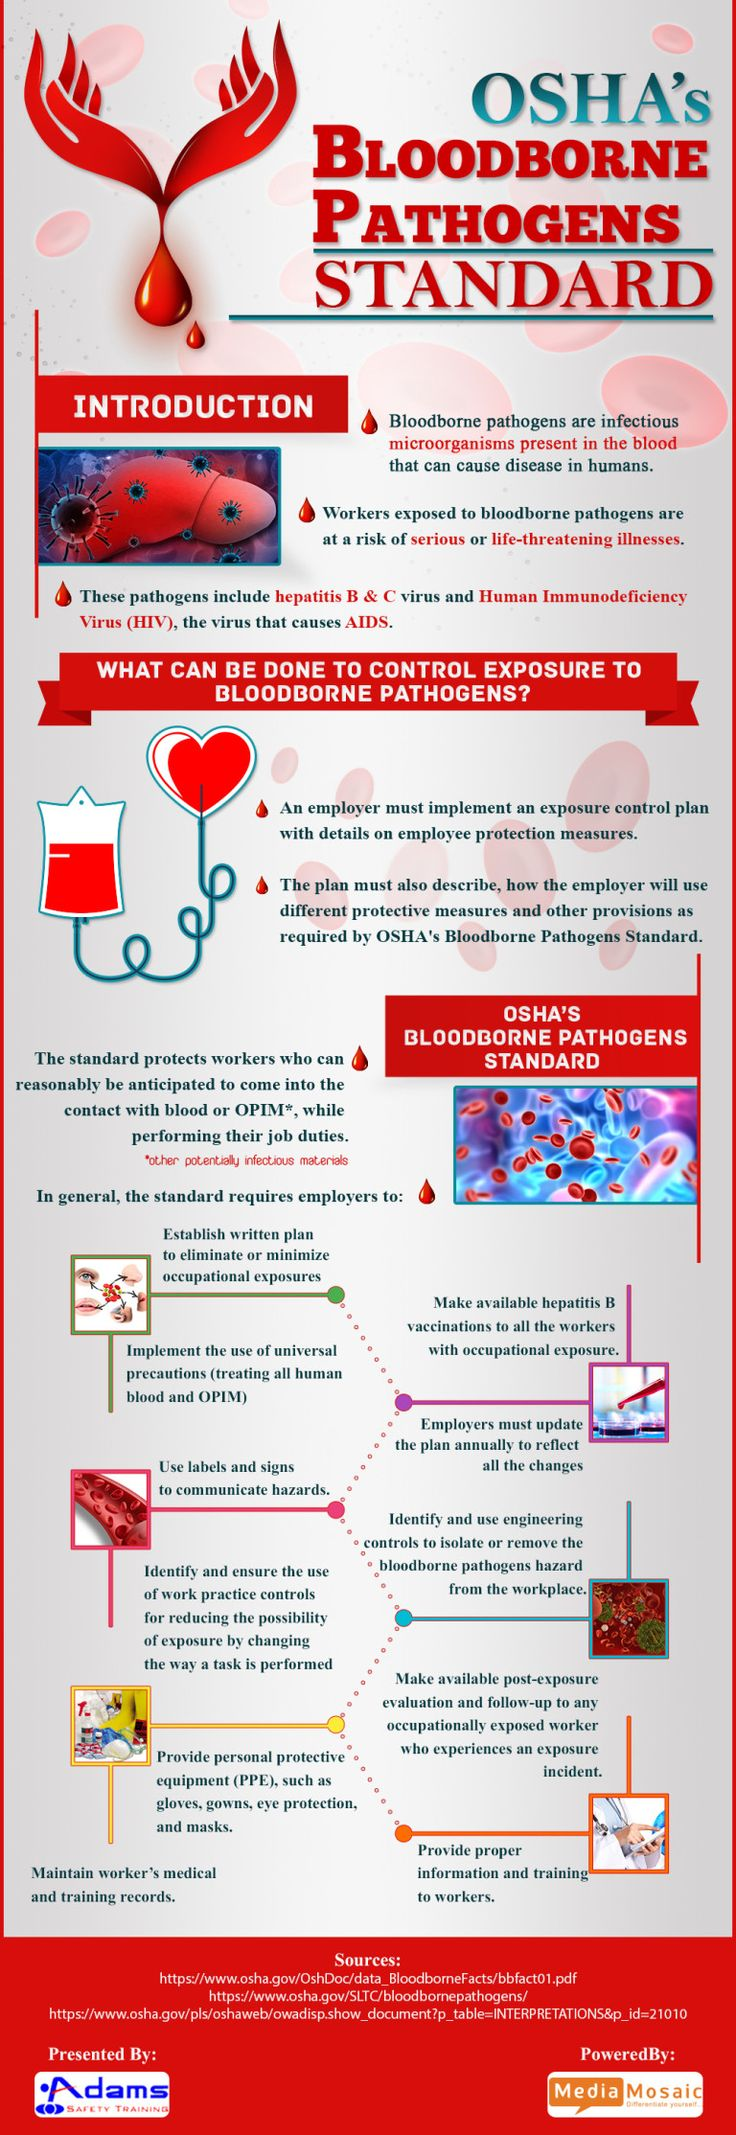 7 best images about safe sharps disposal on pinterest for Bloodborne pathogens policy template